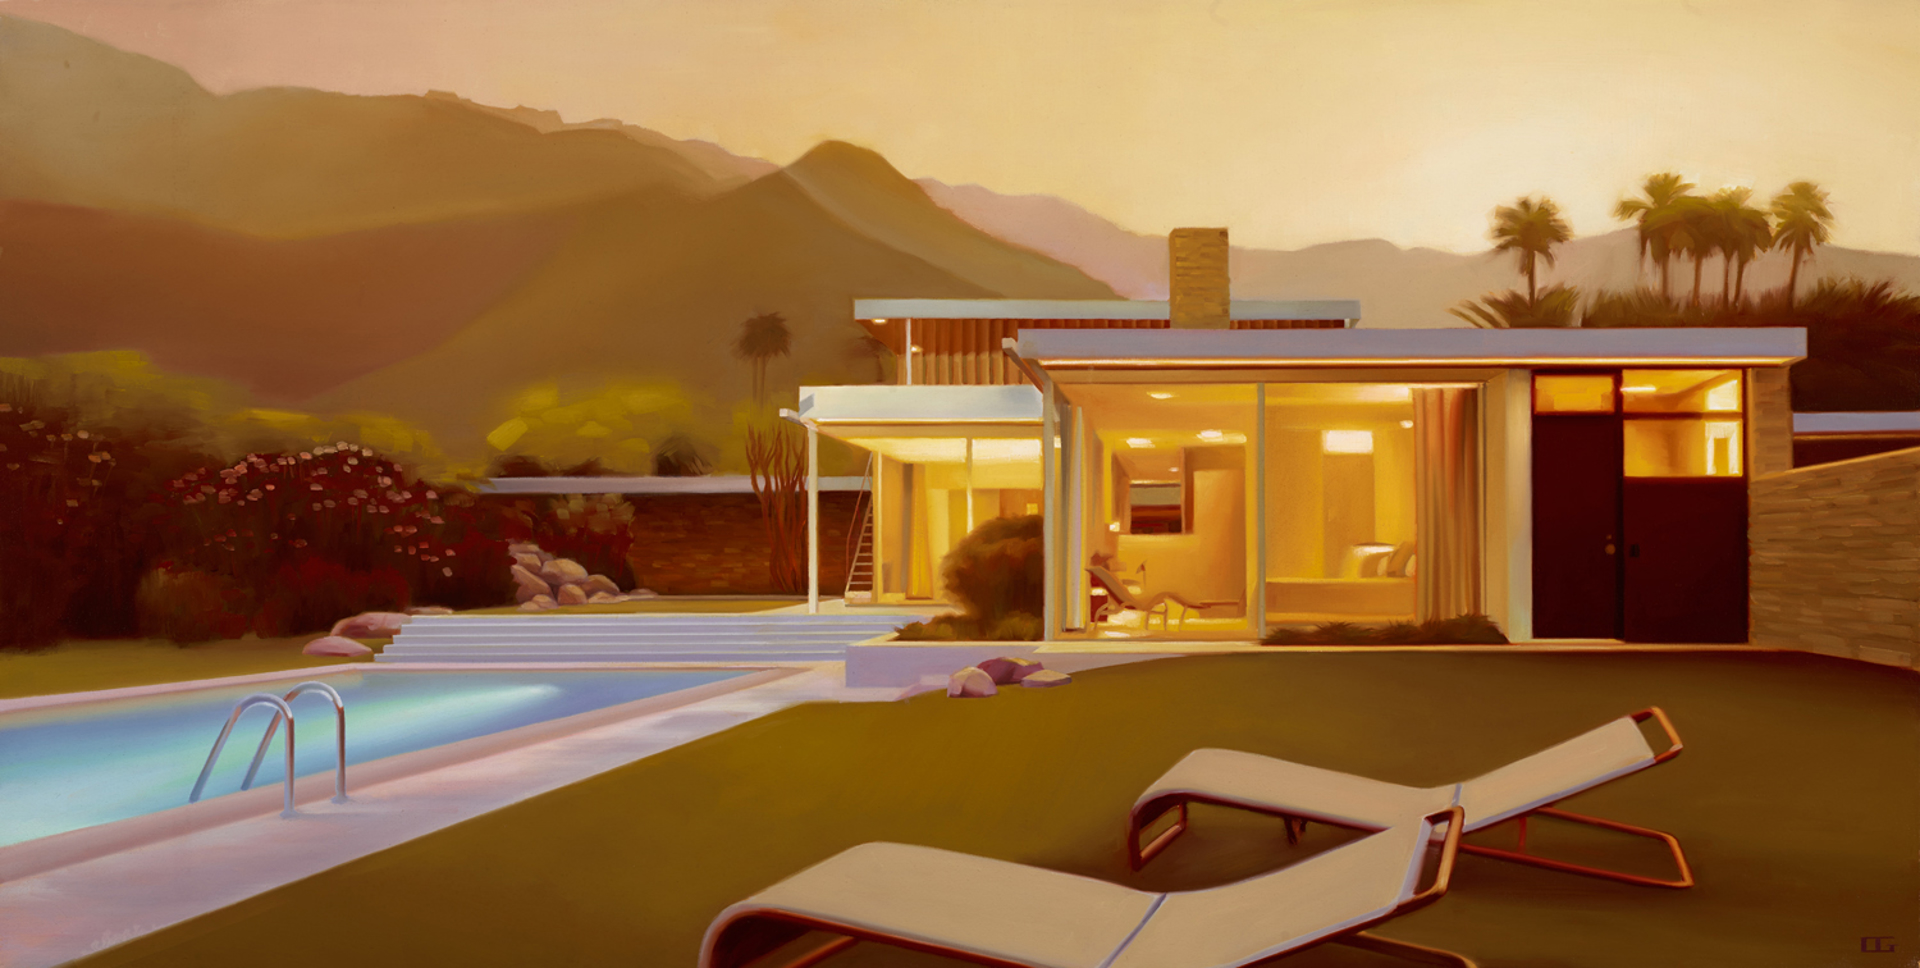 Kaufmann House (S/N) by Carrie Graber